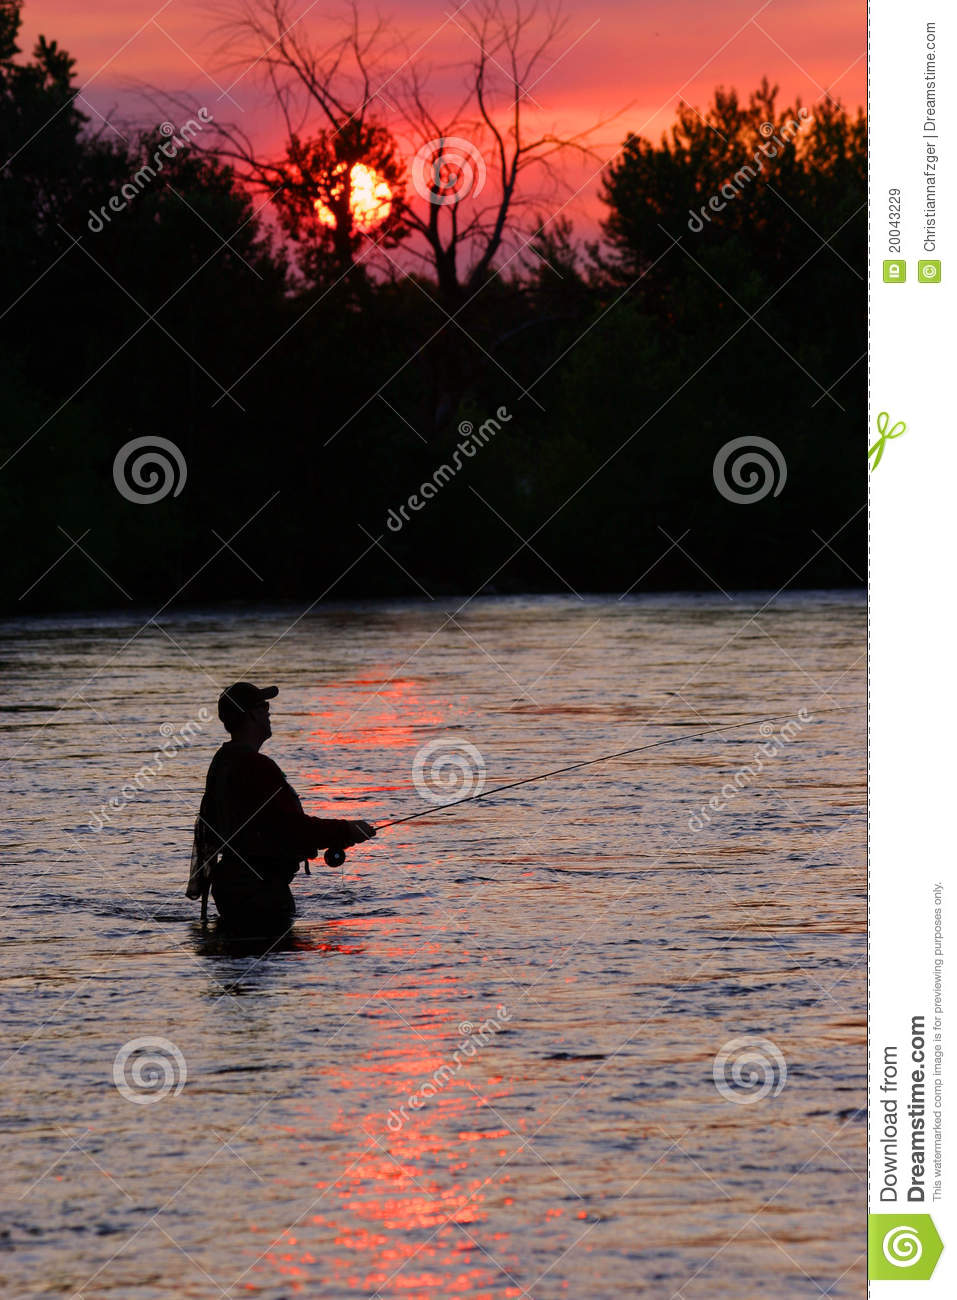 Fly fishing the boise river royalty free stock images for Fly fishing boise idaho